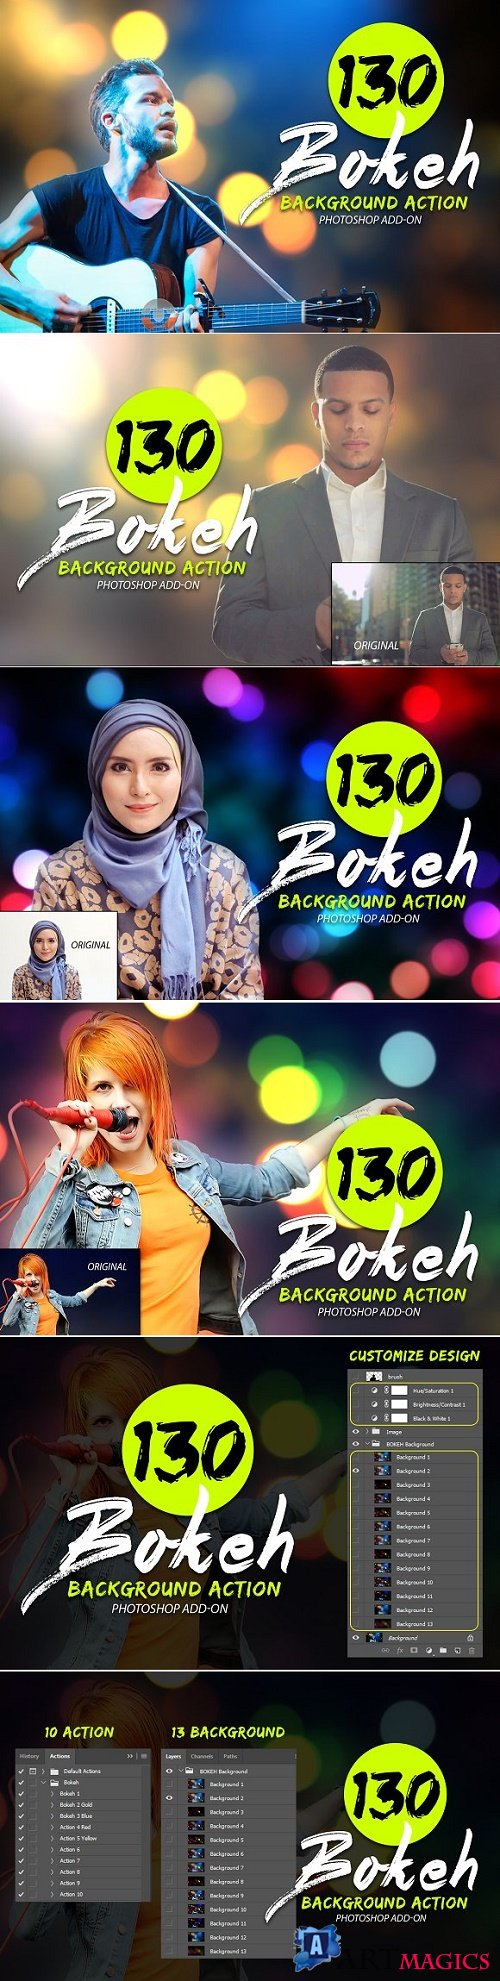 130 Bokeh Photoshop Action - 2025195